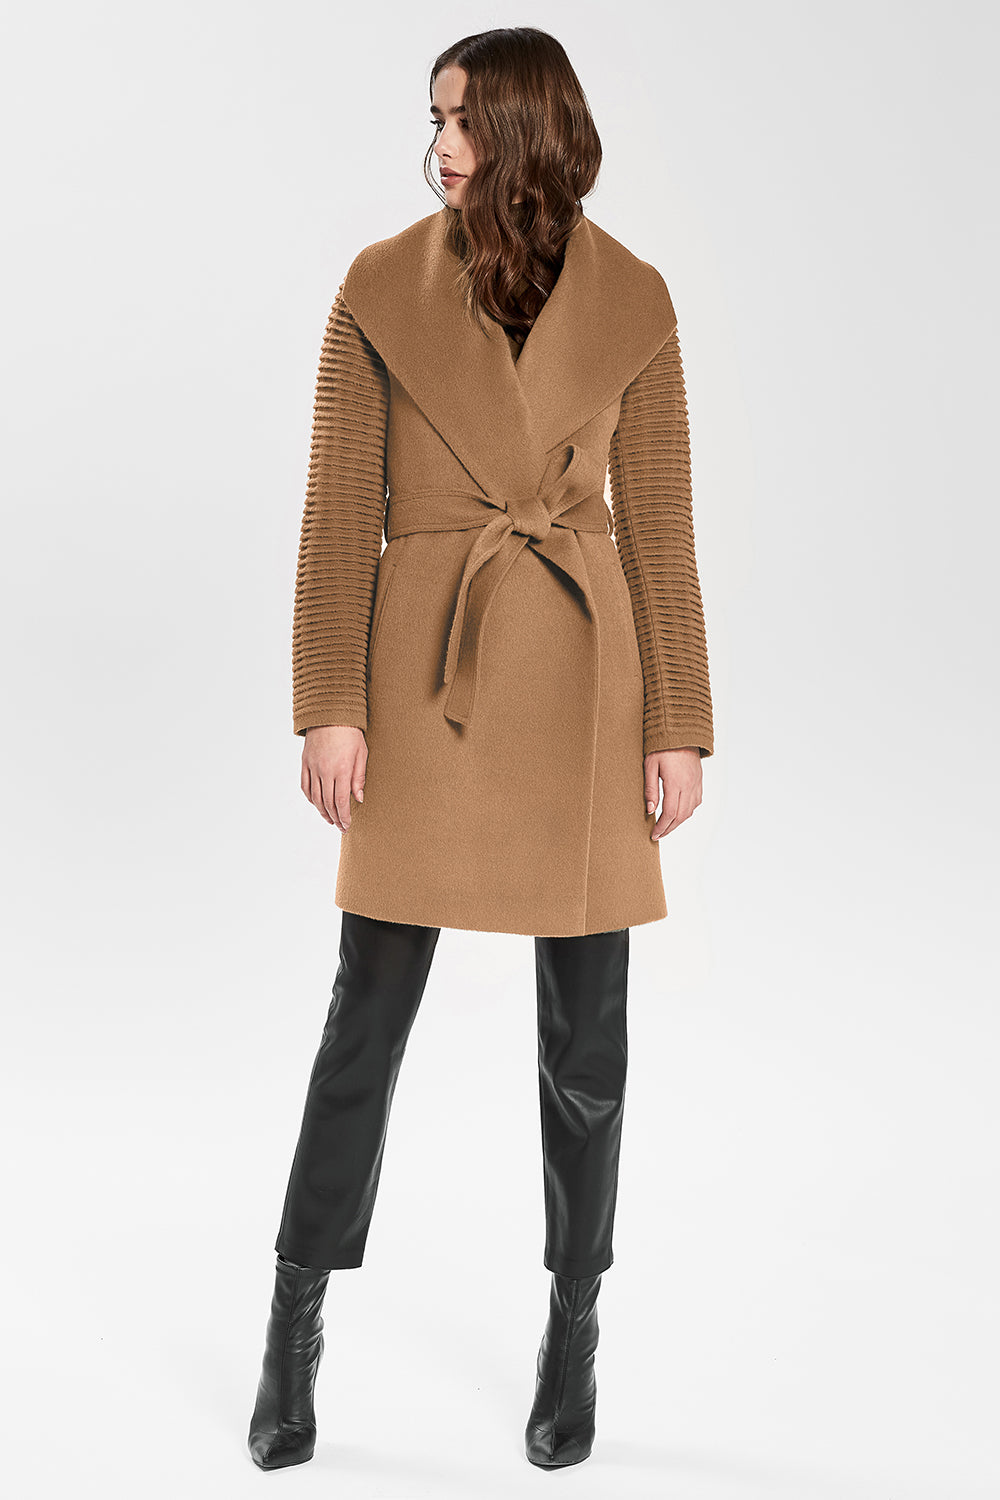 Sentaler Mid Length Shawl Collar Wrap Coat with Ribbed Sleeves featured in Baby Alpaca and available in Dark Camel. Seen from front.